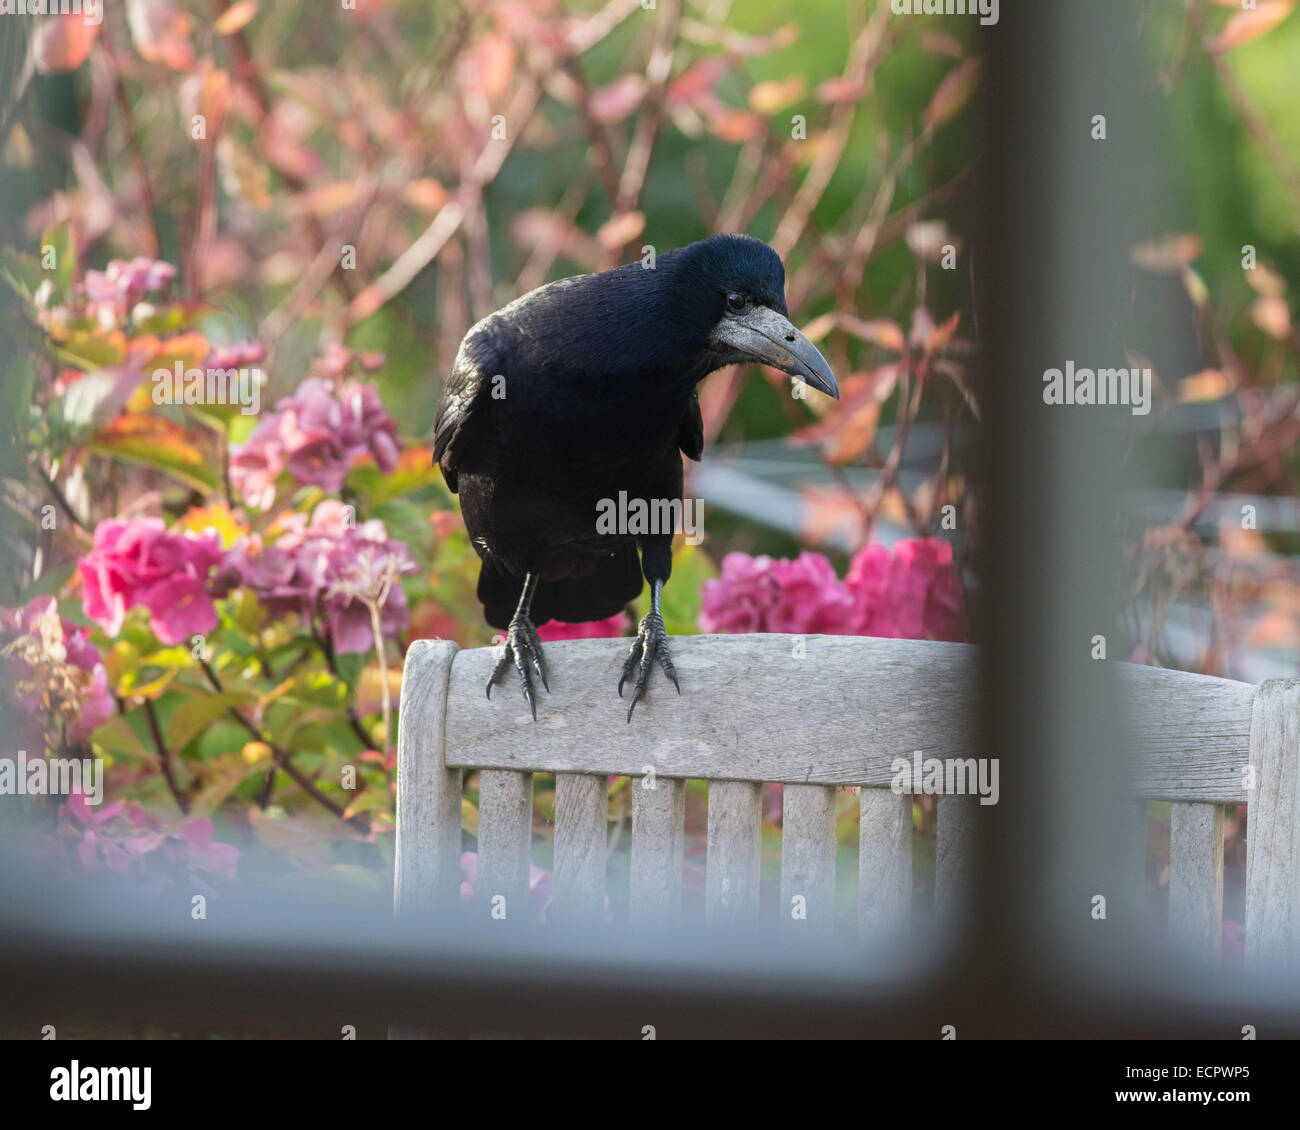 rook standing on garden chair against bright autumn garden background looking into house window - Stock Image